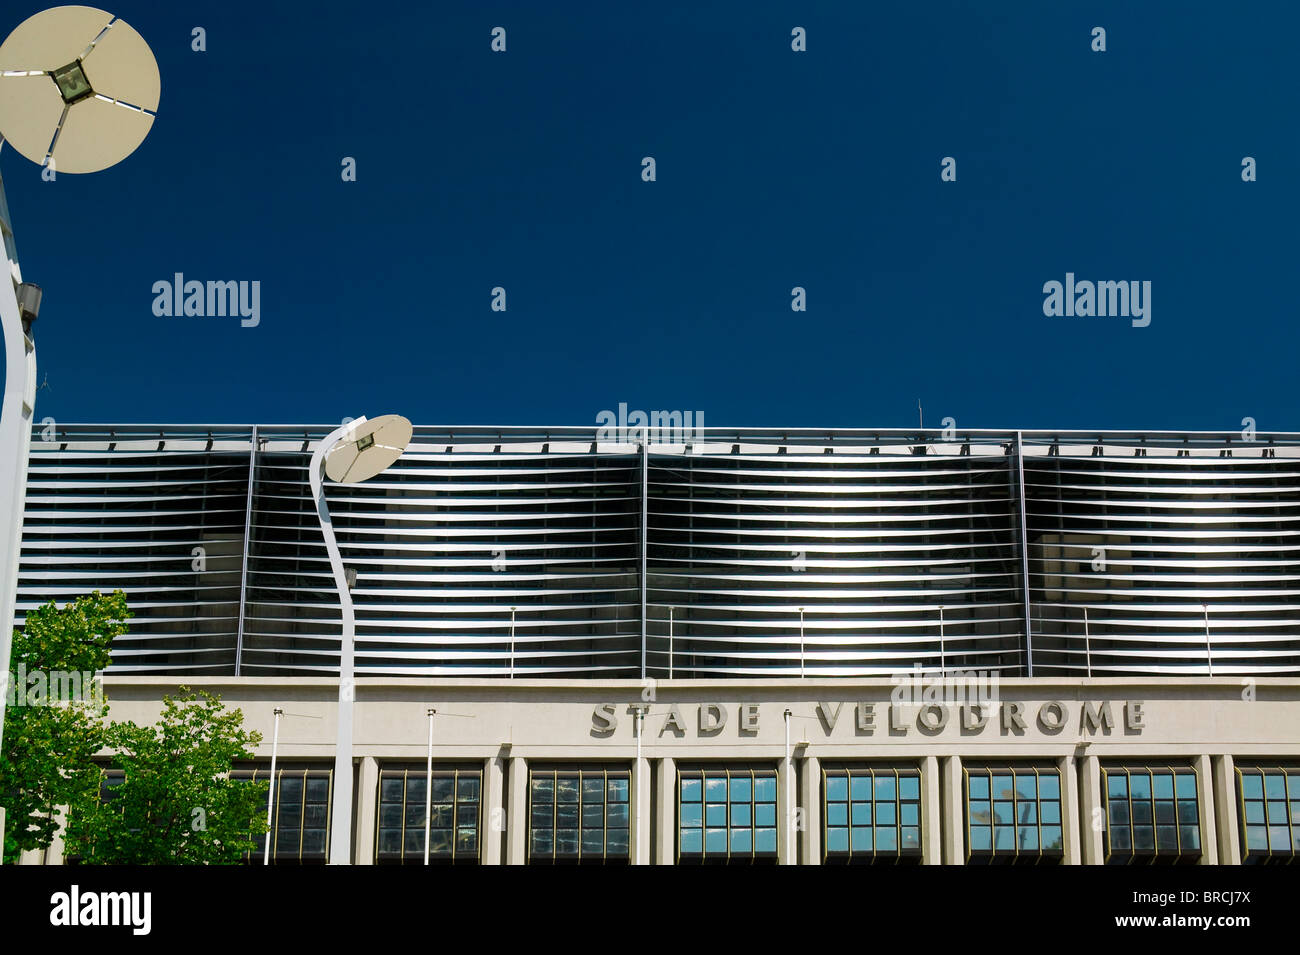 THE STADE VELODROME, MARSEILLE, FRANCE - Stock Image